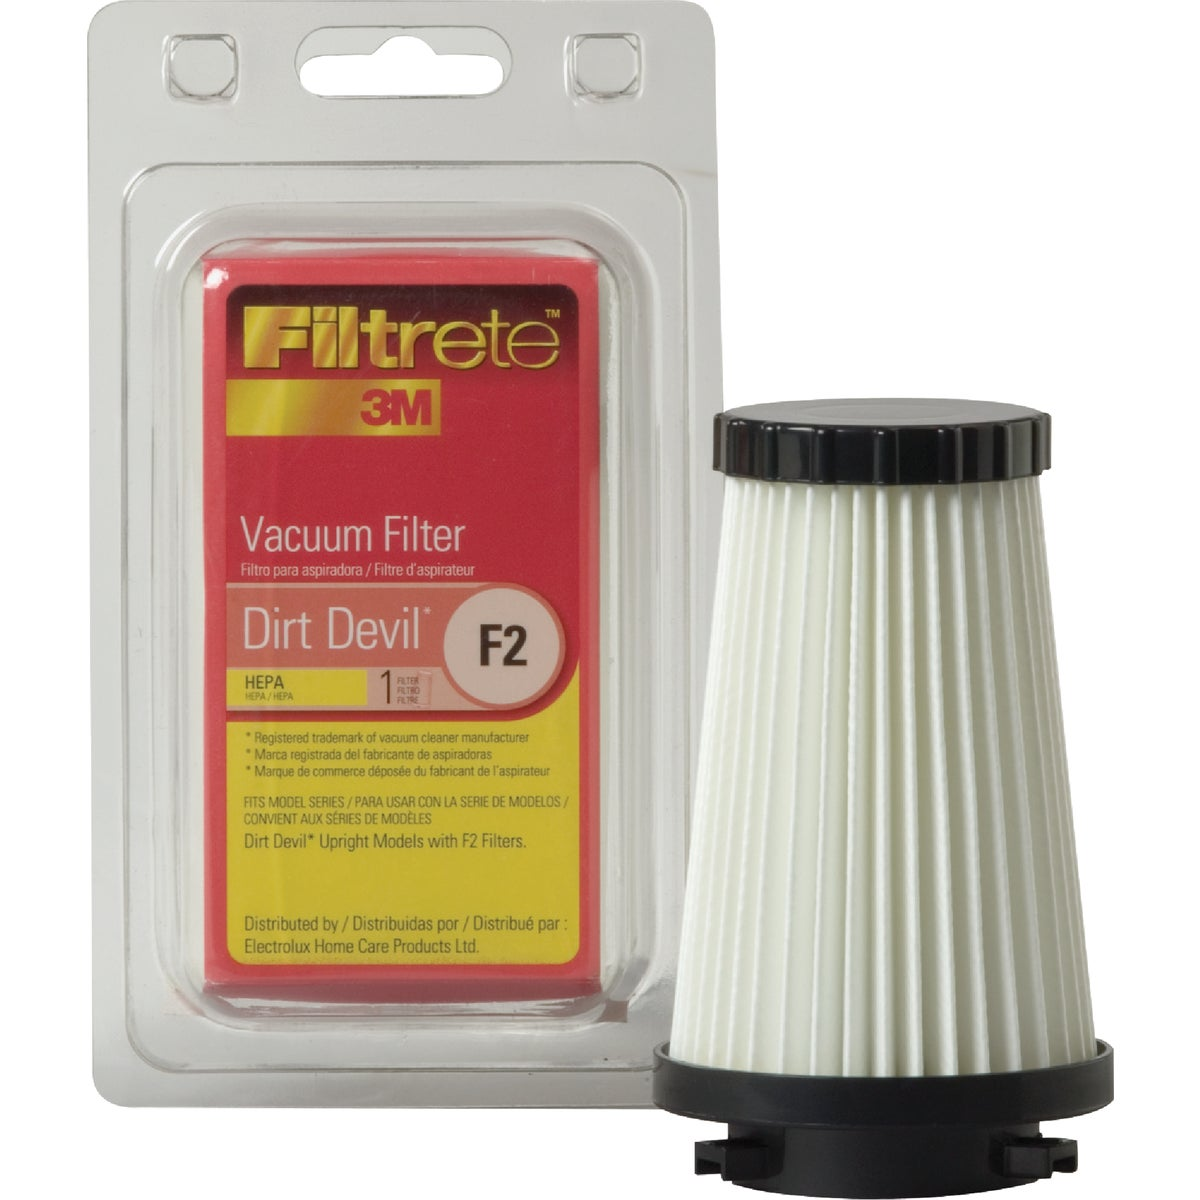 DRT DEVIL F2 HEPA FILTER - 65802A-4 by Electrolux Home Care